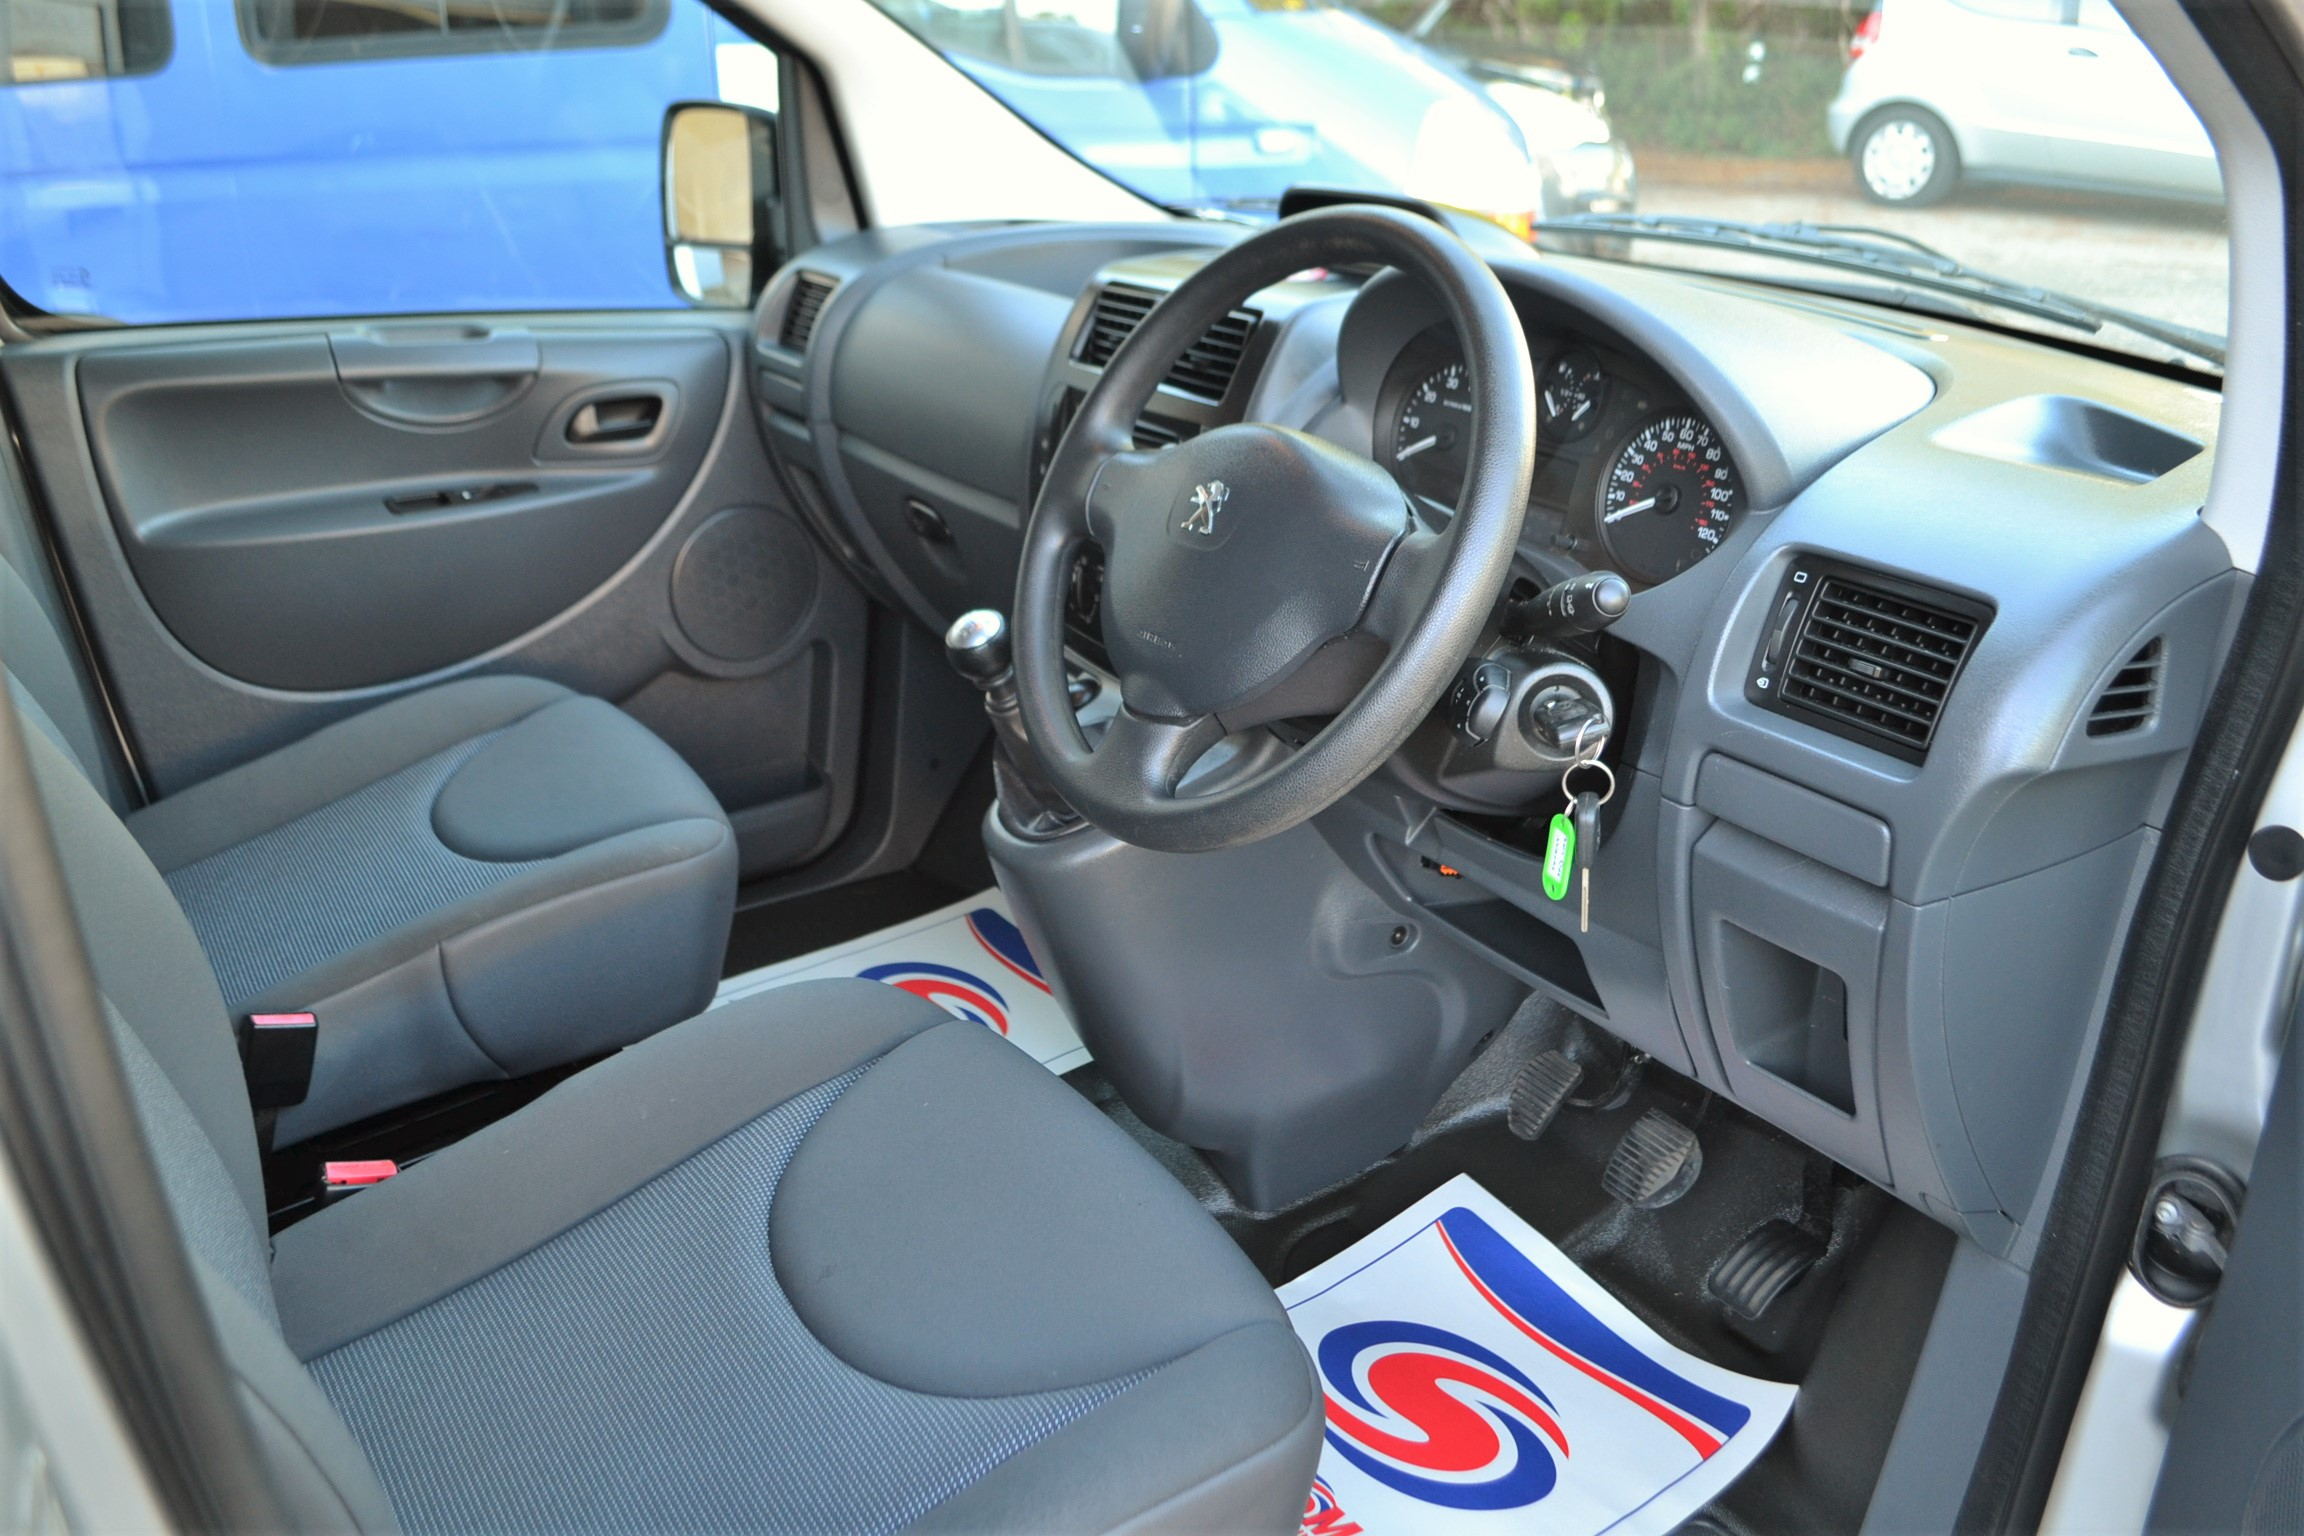 Disabled Cars For Sale Bristol Wheelchair Accessible Vehicles Used For Sale Somerset Devon Dorset Bath Peugeot Expert SF13 LRZ 18